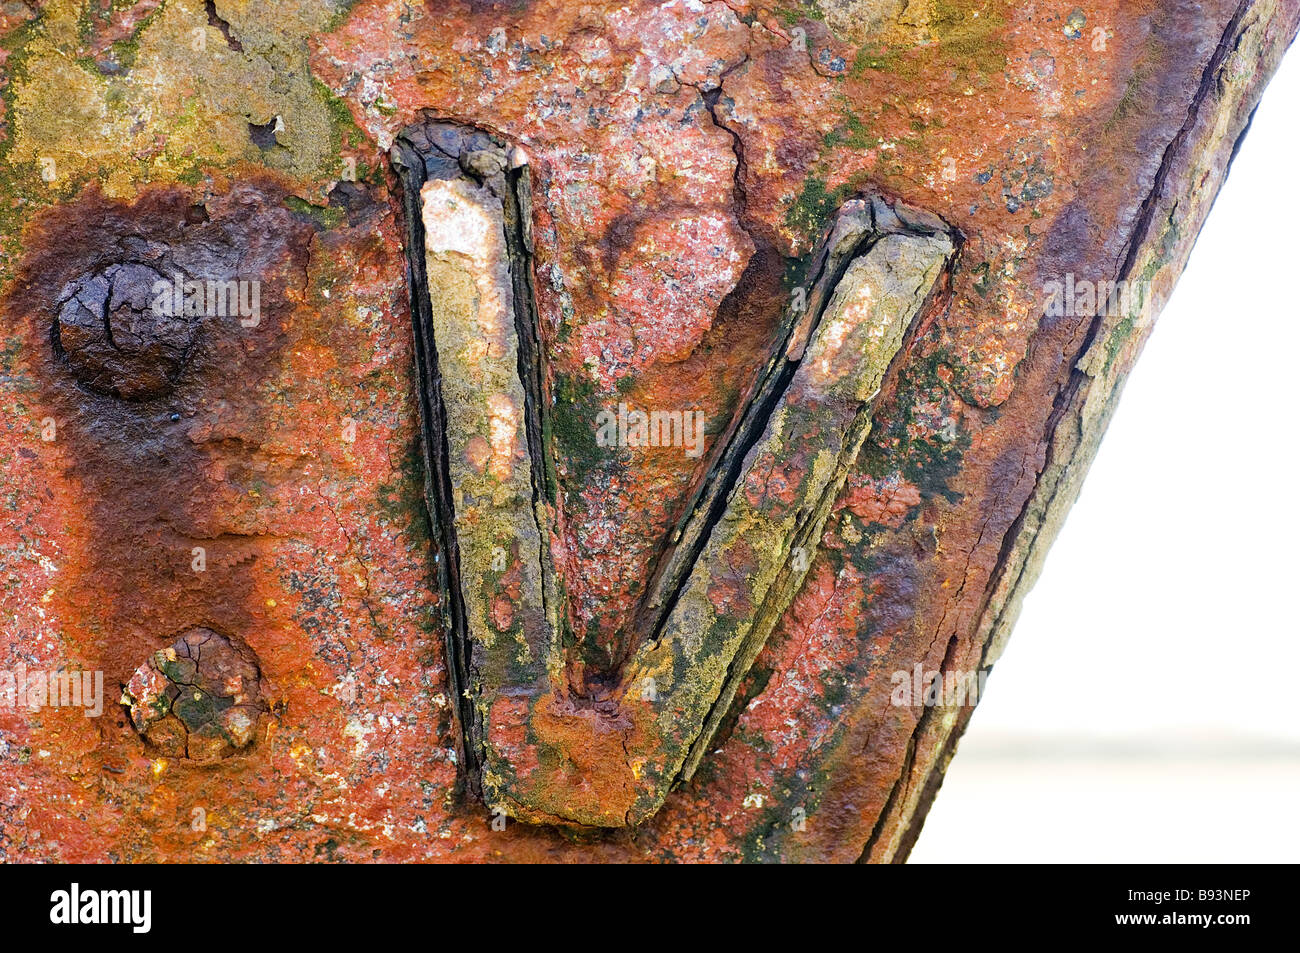 Rusting roman numerals on bow of abandoned fishing boats,Fleetwood,Lancashie,UK - Stock Image